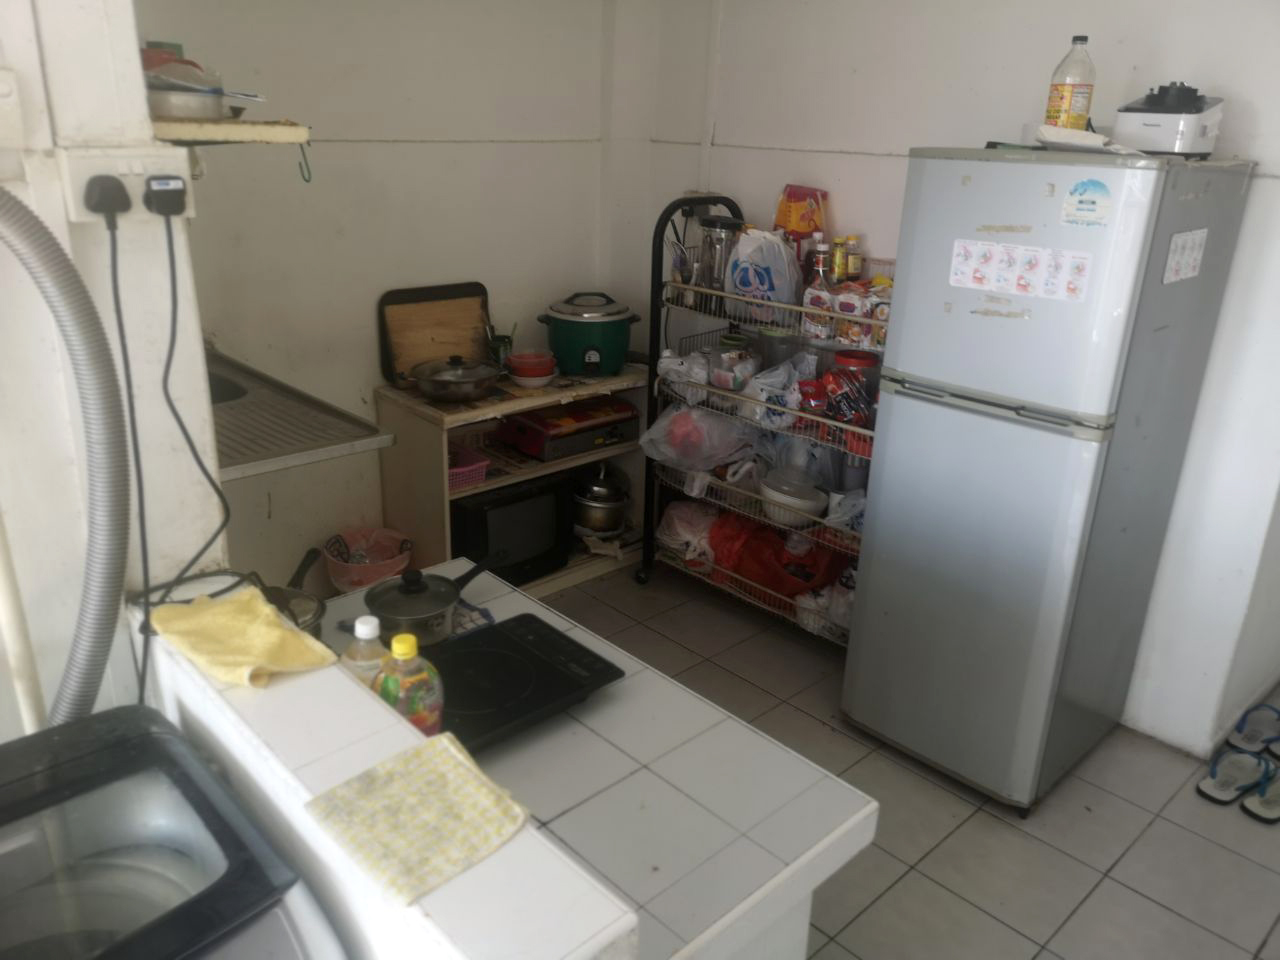 20191114 kitchen.jpeg